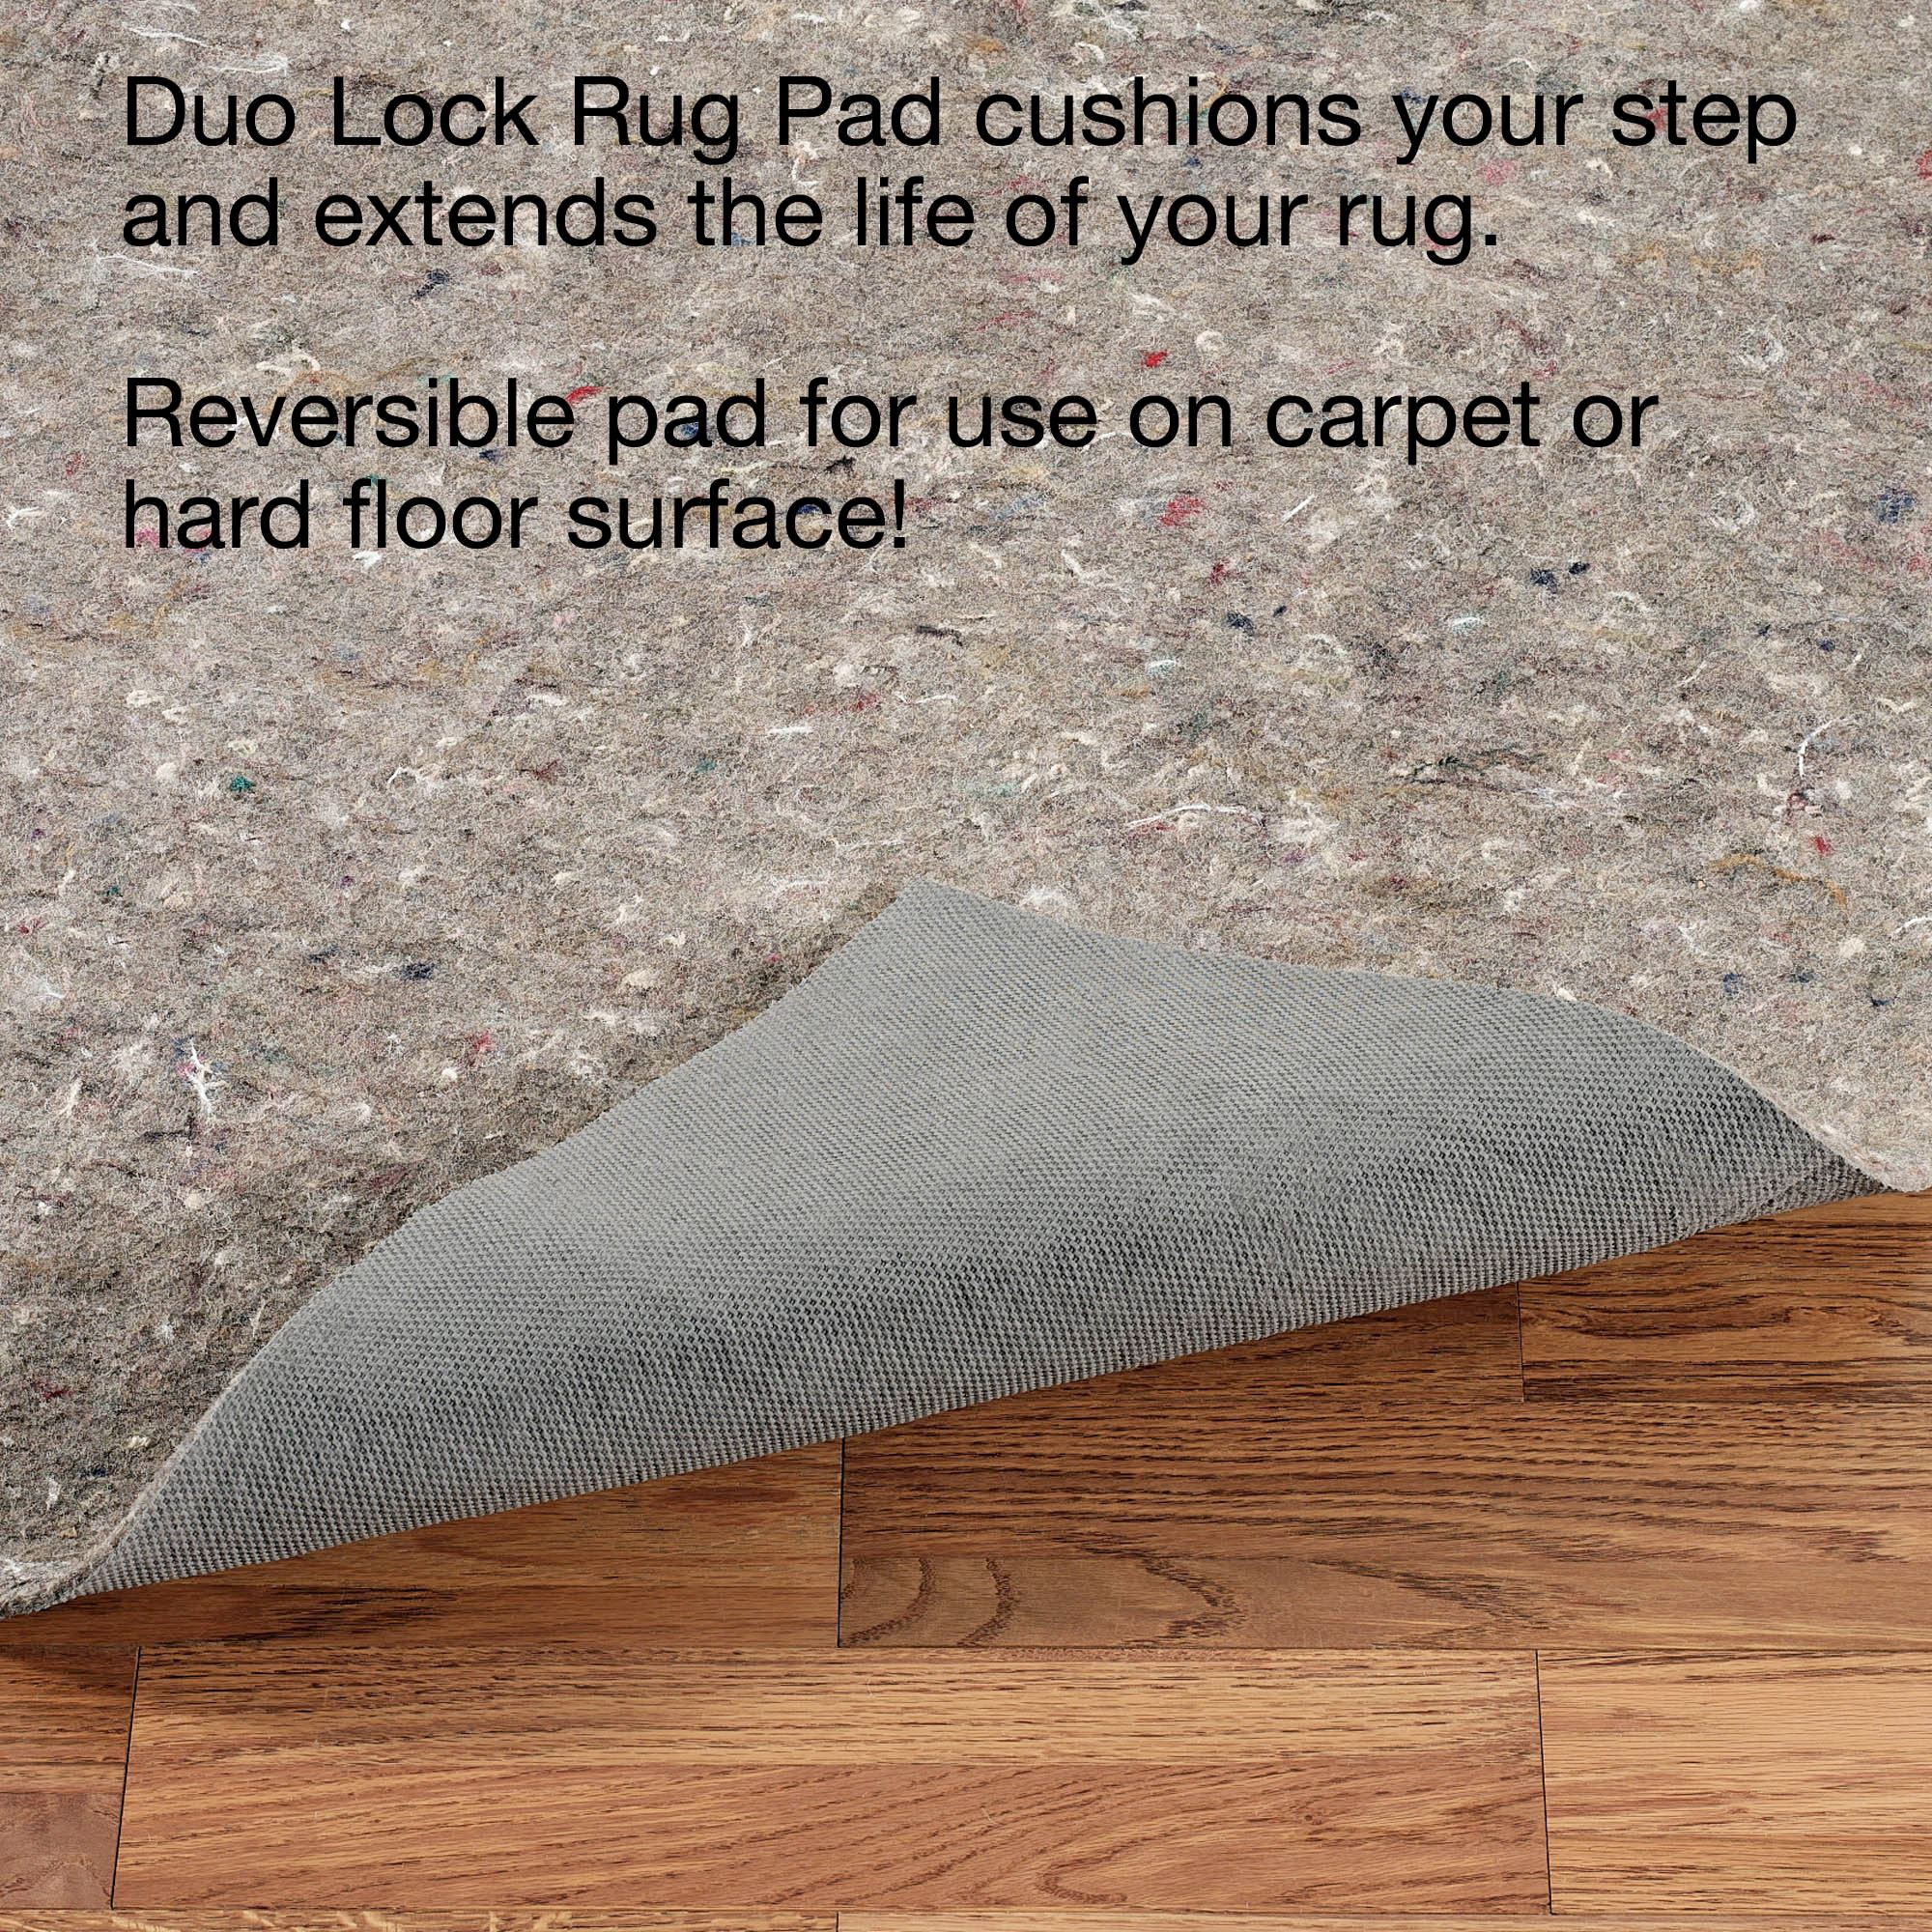 duo lock rug pad Area Rug Pad